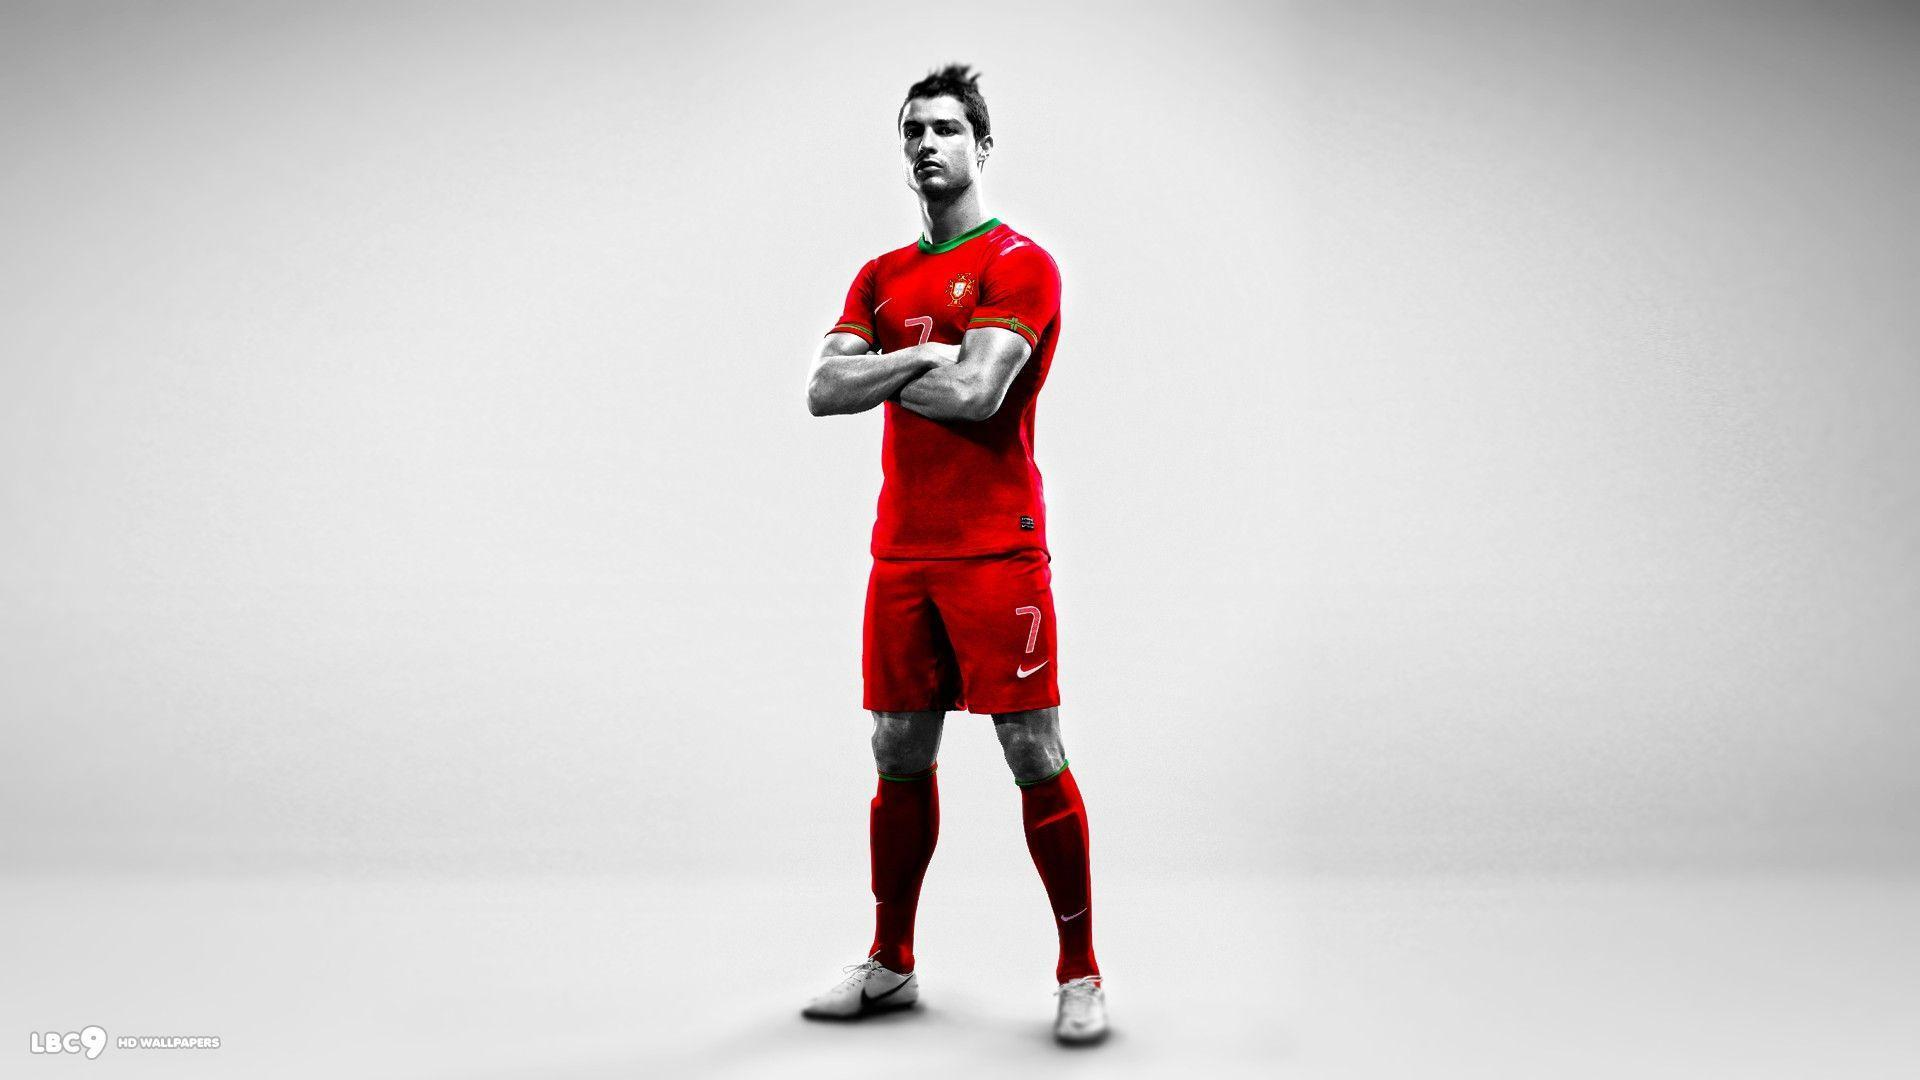 cristiano ronaldo wallpaper 10/22 | players hd backgrounds